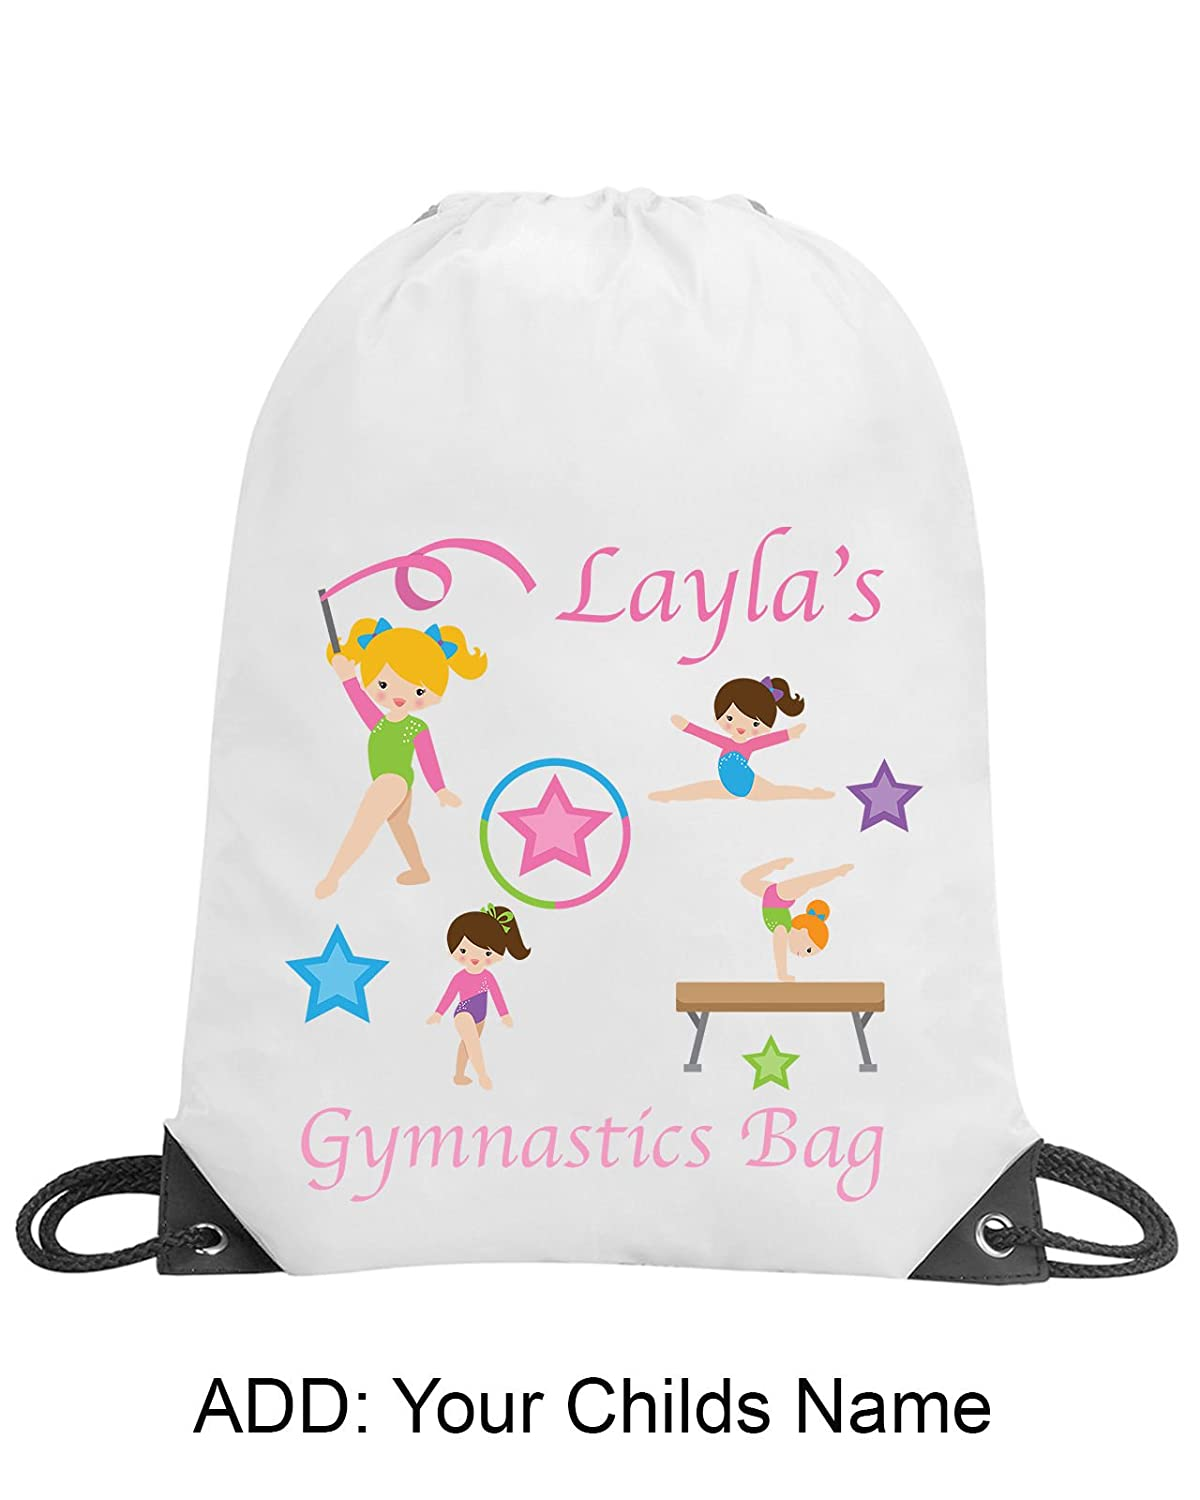 Girls Gymnastics Bag Personalised Gym Swimming PE Bag School Gift Drawstring Shugon